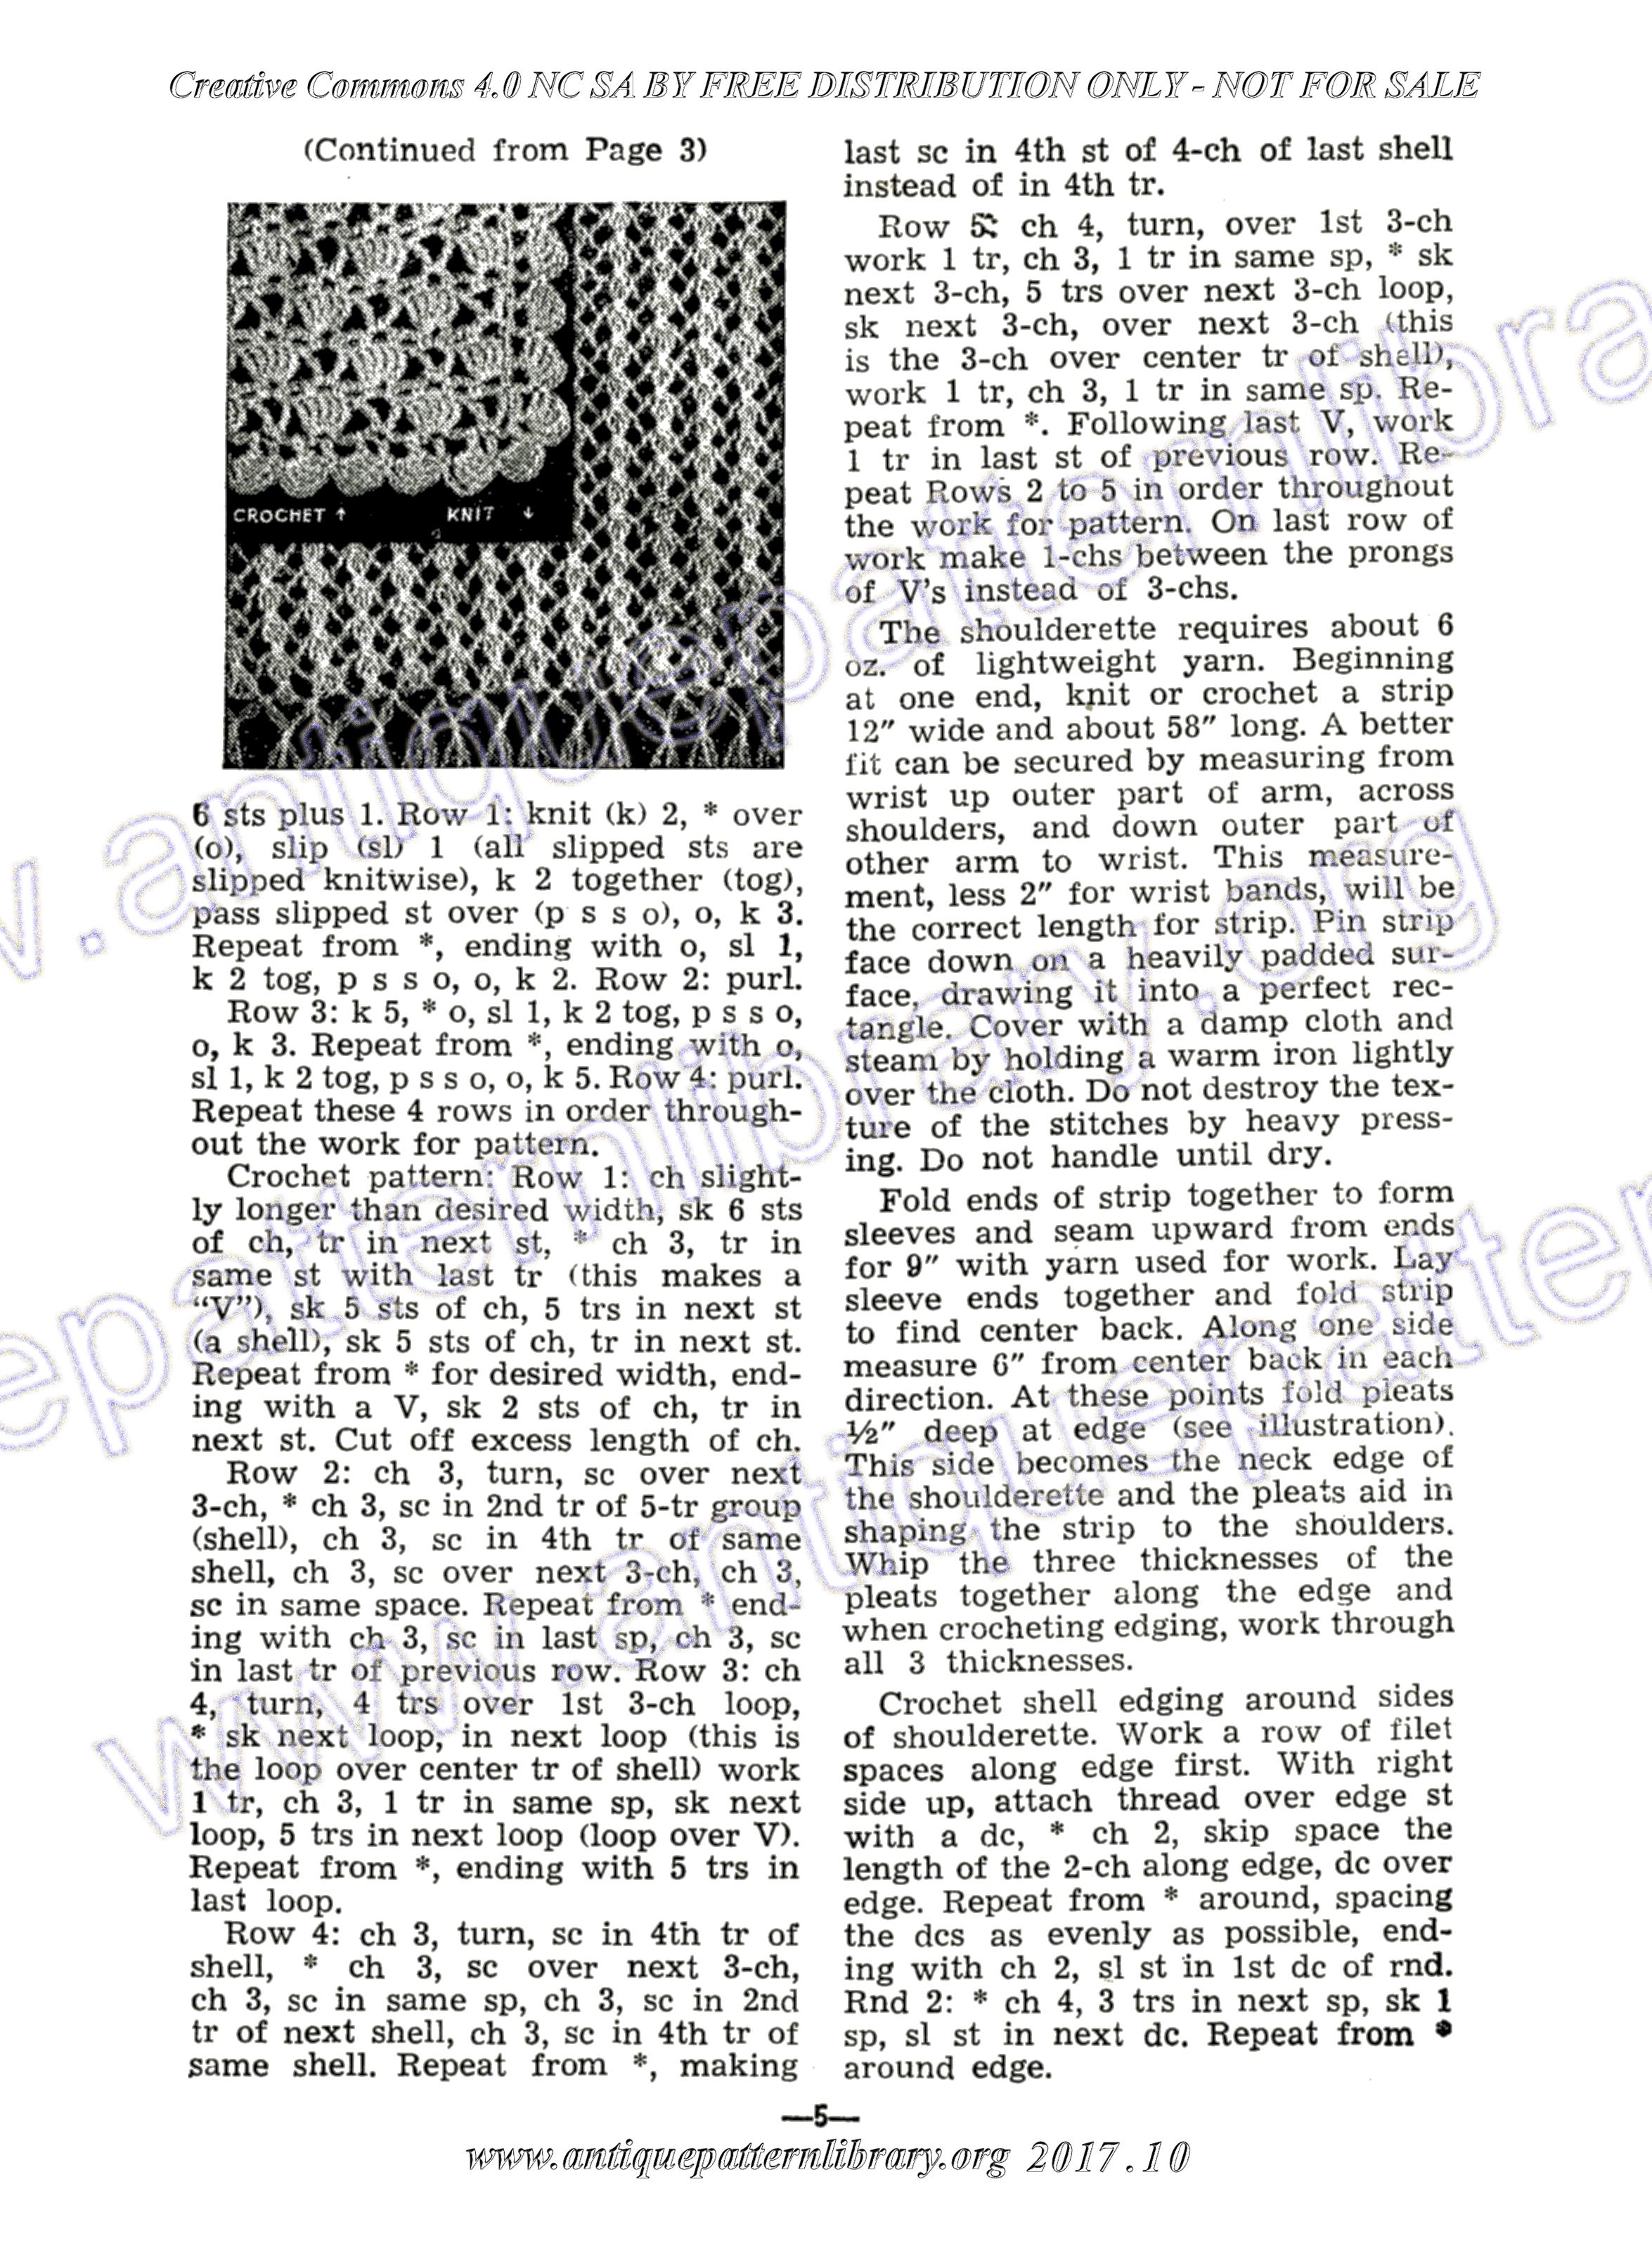 Apl Page 5 Knitted Or Crocheted Shoulderette Shawl